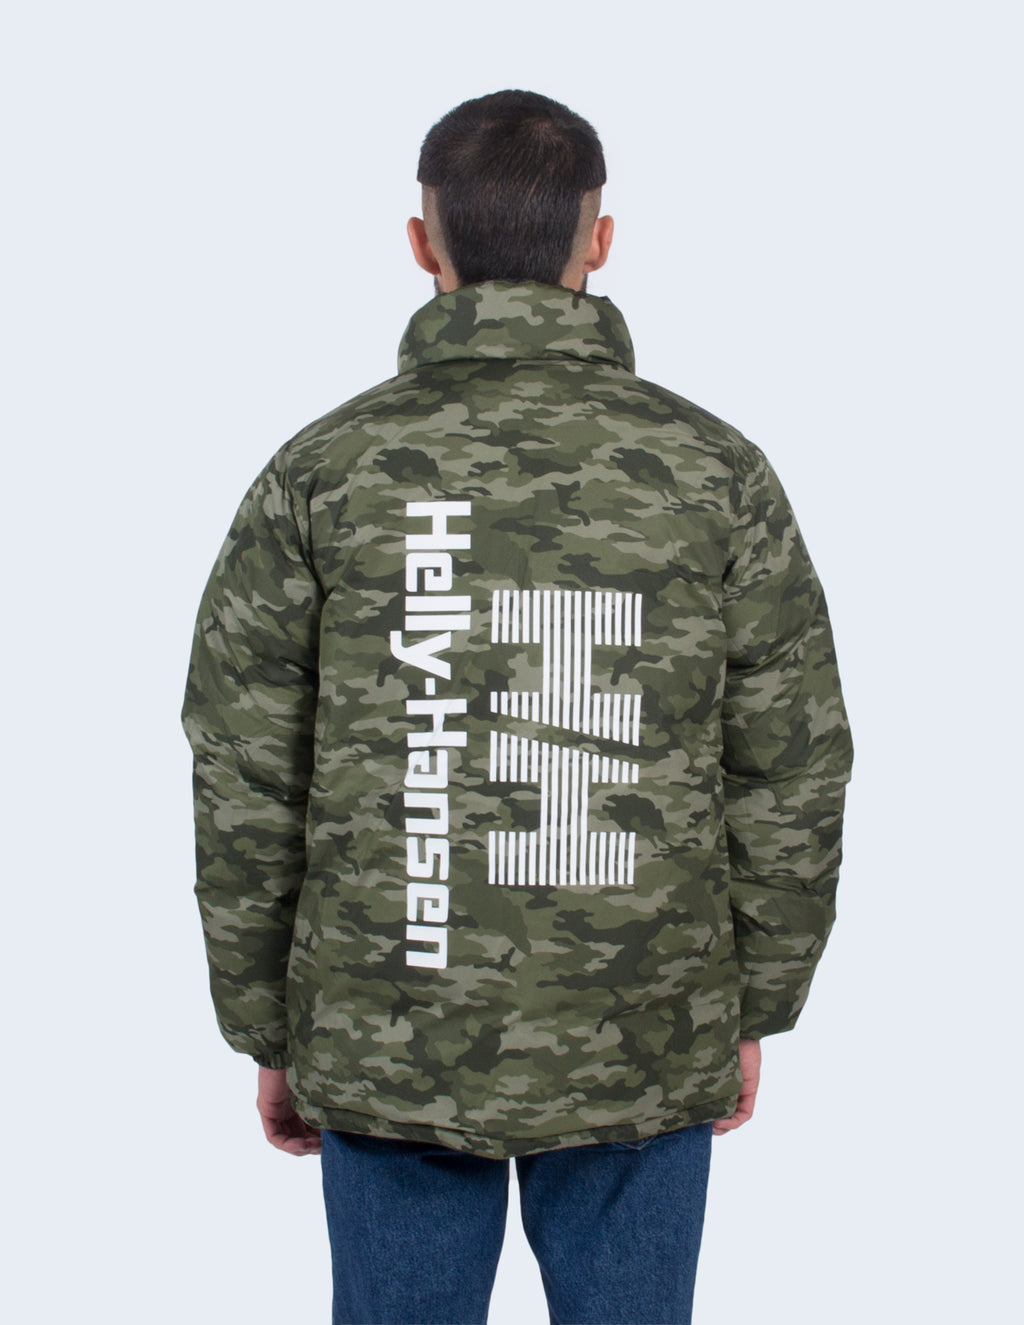 77ebbab0cd5e Helly Hansen - Reversible Down Jacket – 5 PM